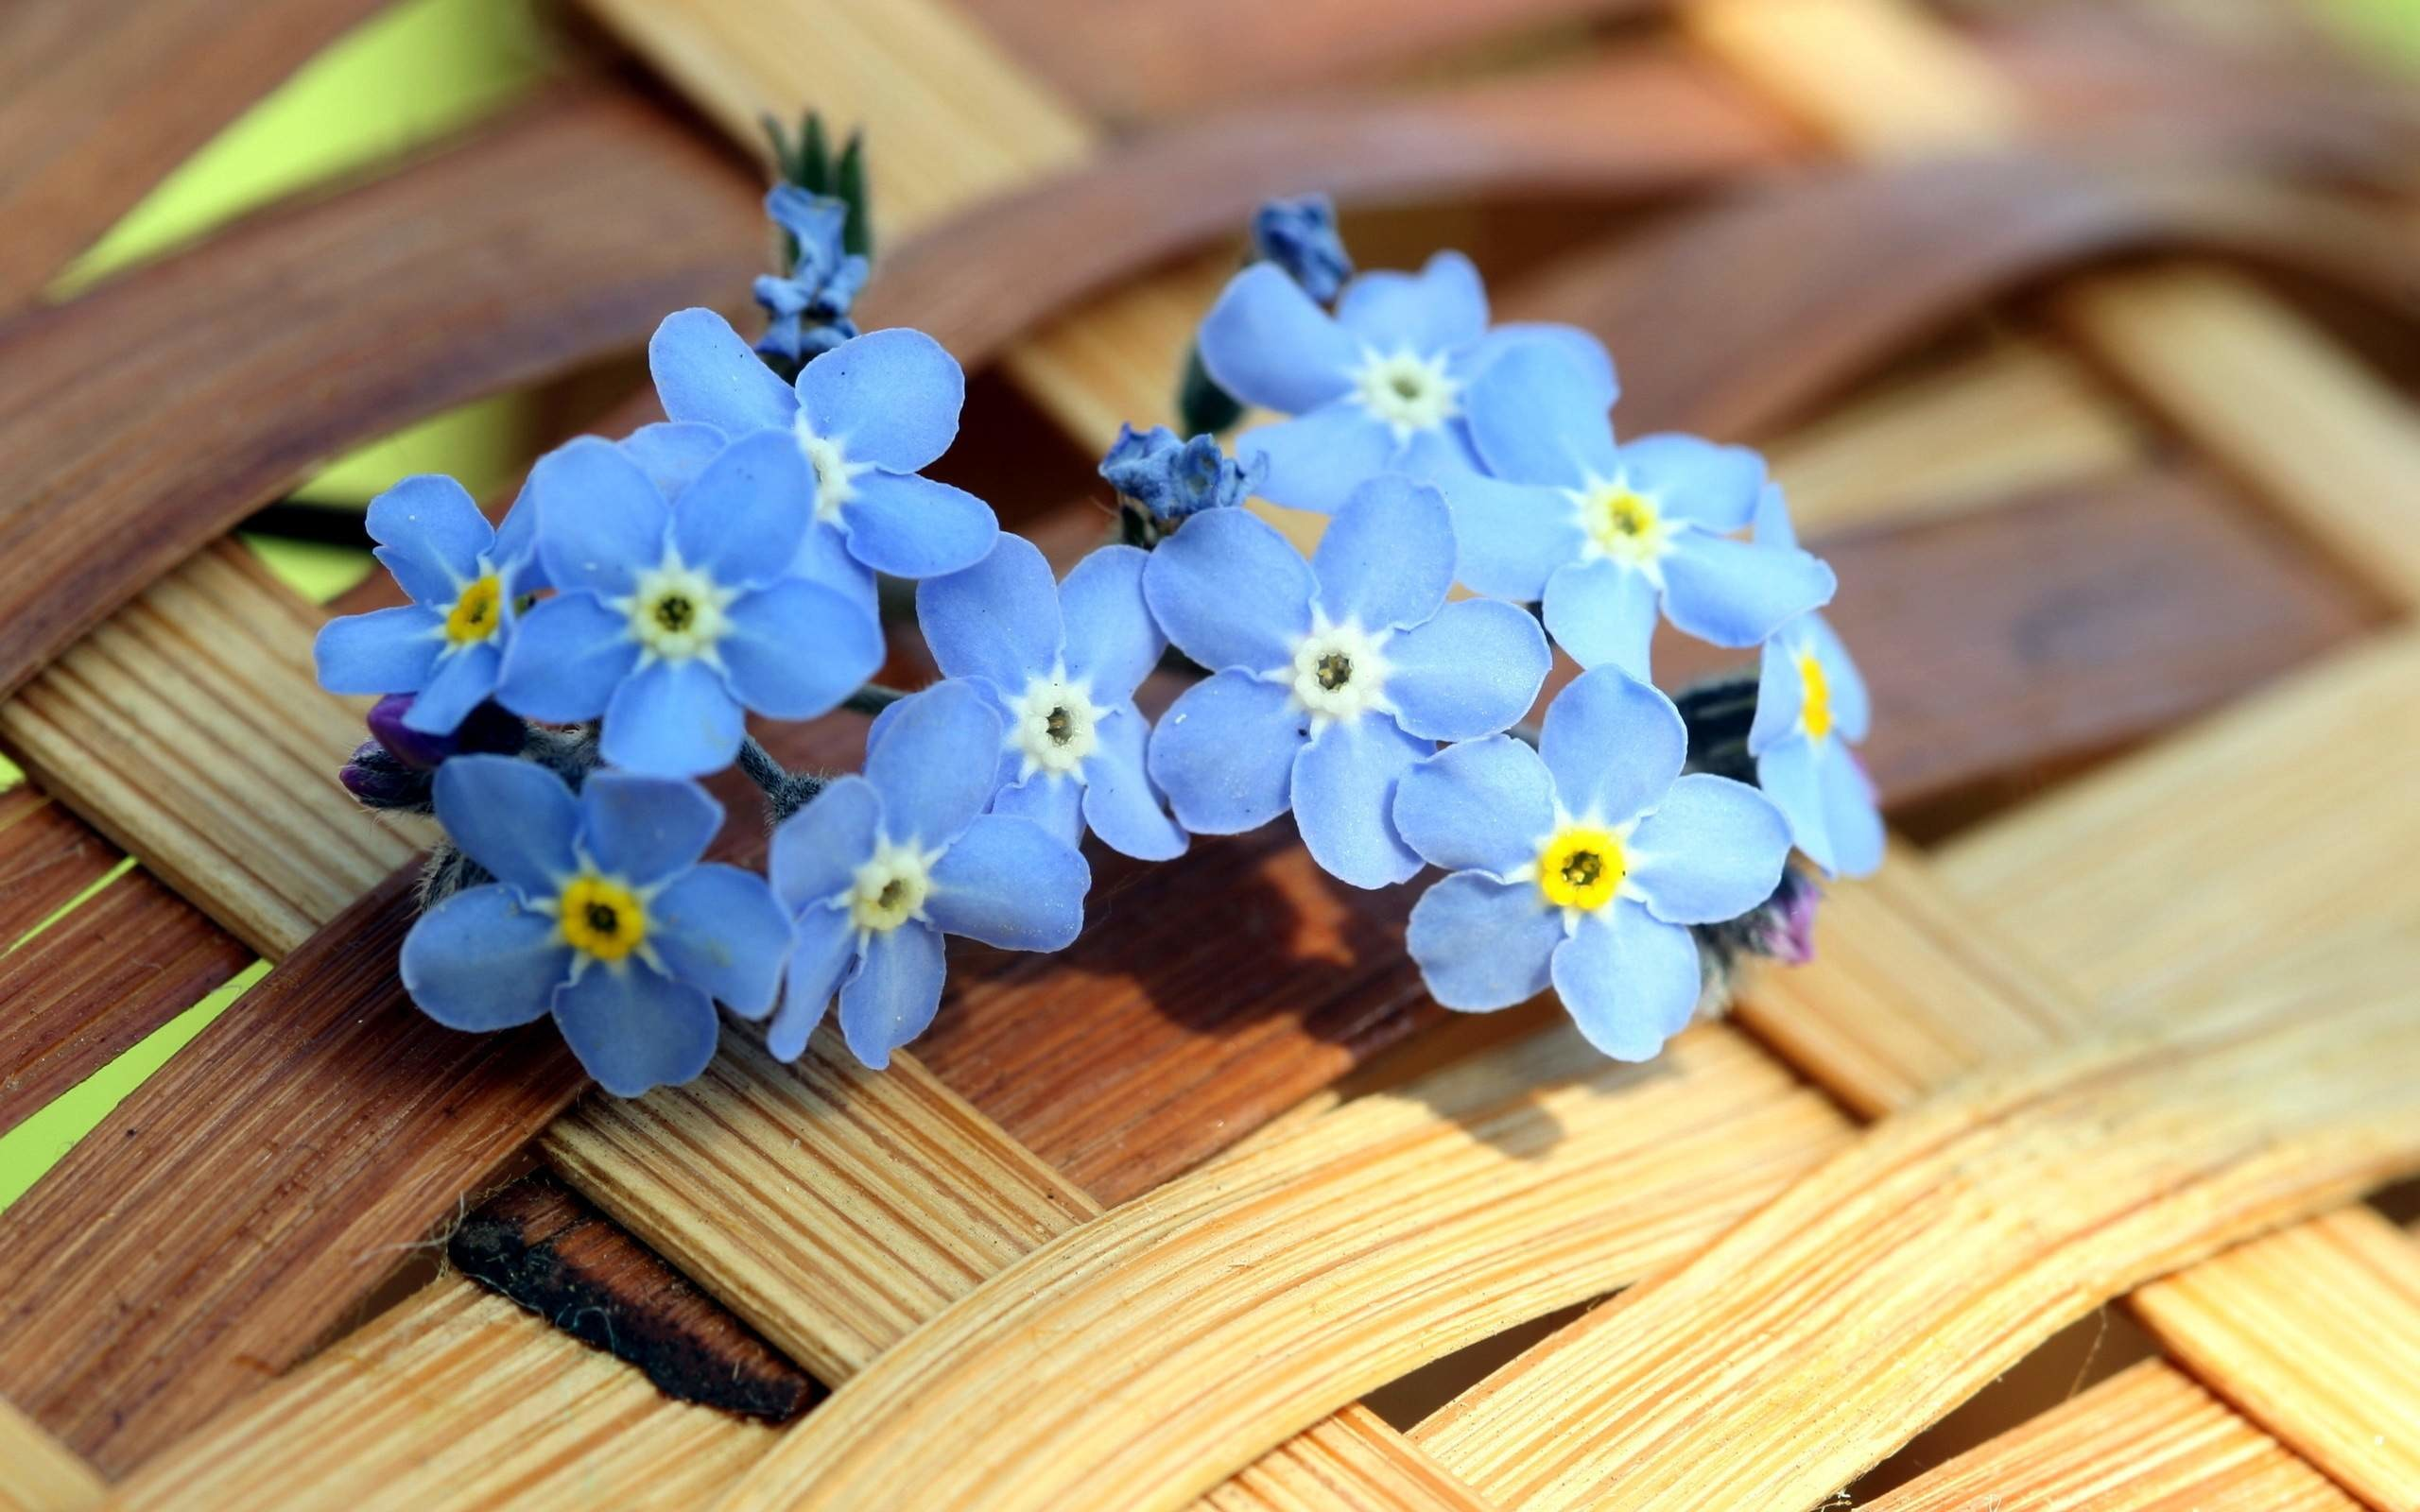 Res: 2560x1600, myosotis blue flowers wallpaper